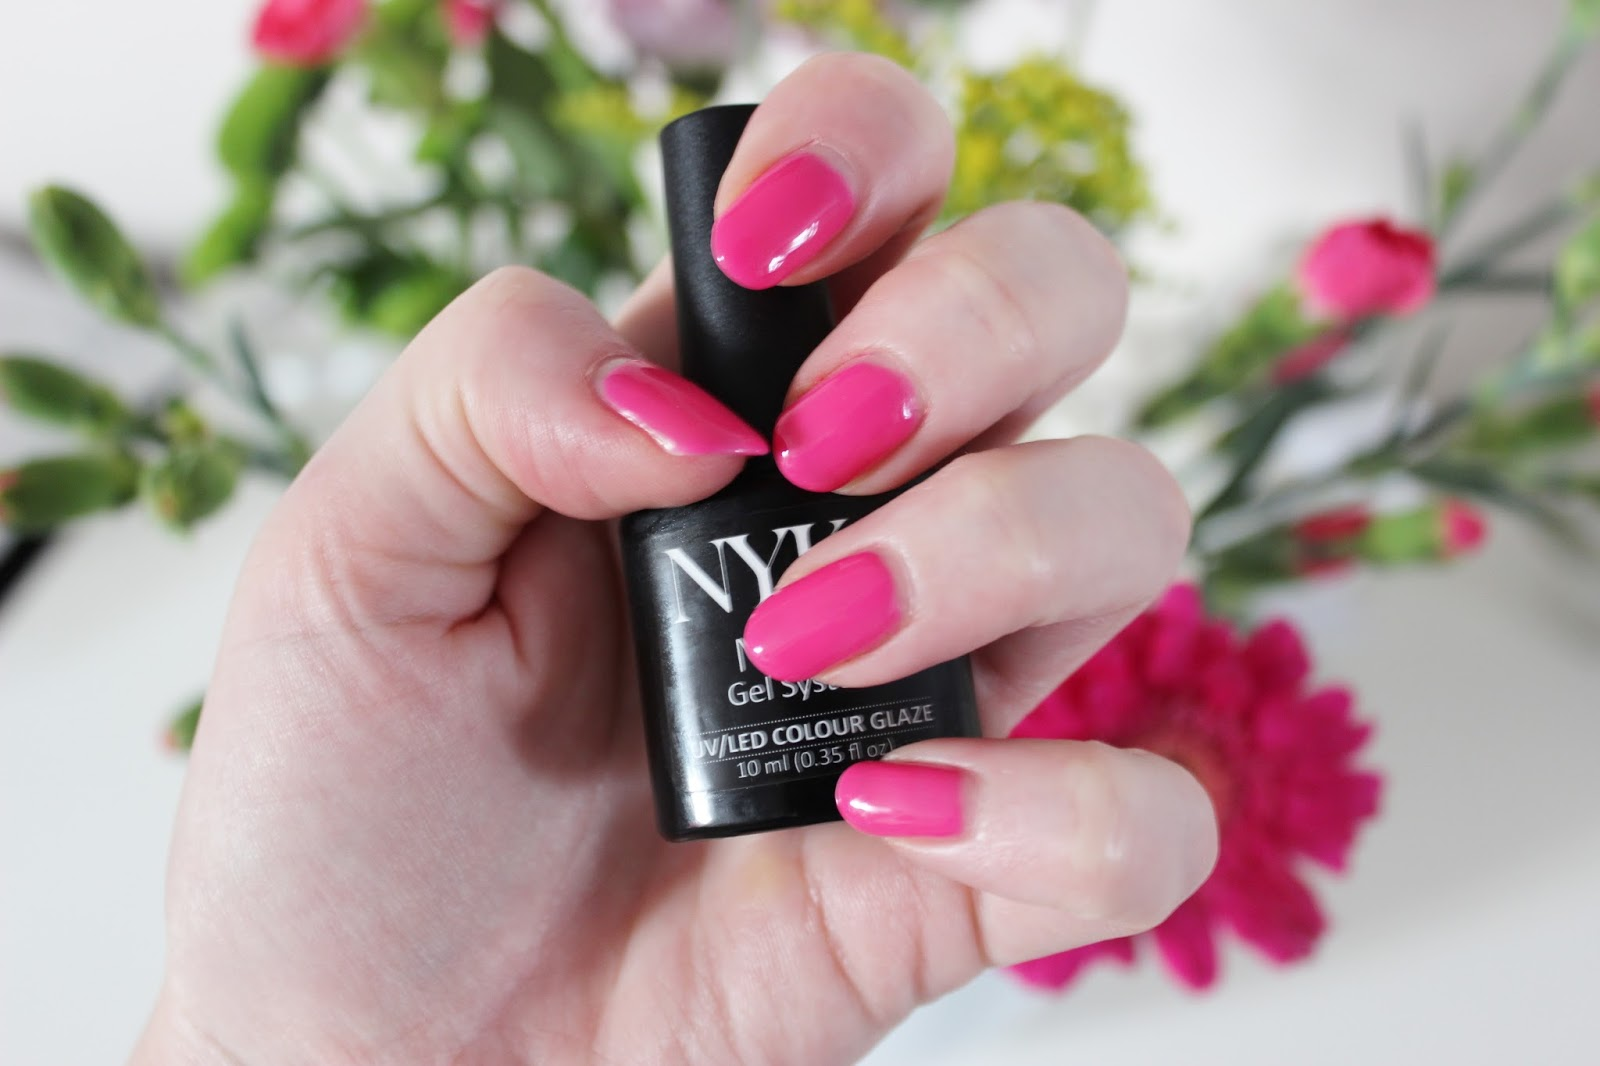 NYK1 Secrets gel nail starter kit finished results